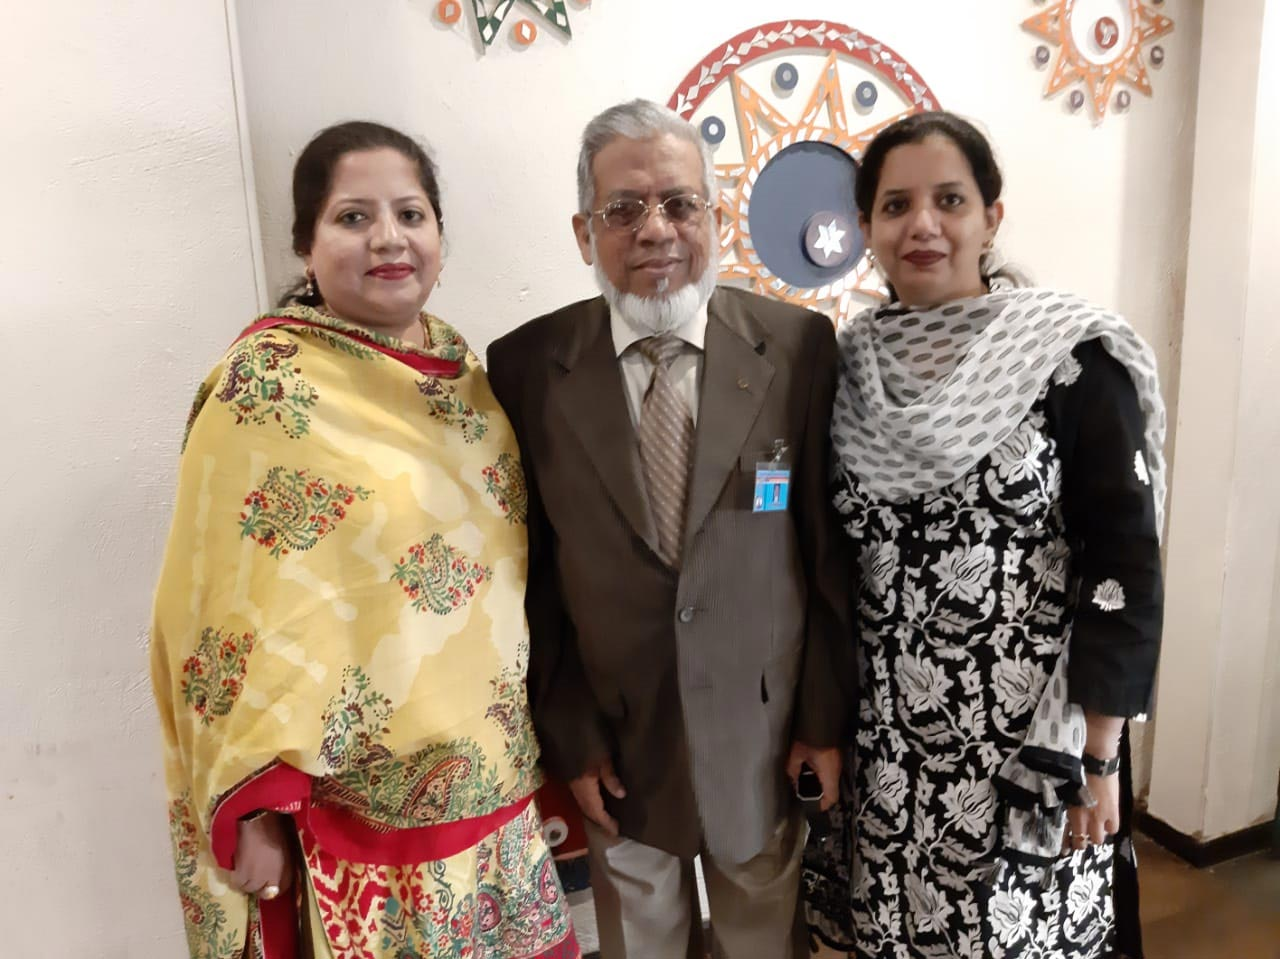 Engr. Iqbal A. Khan with his daughters Dr. Kiran A. Rehman and Erum Imran